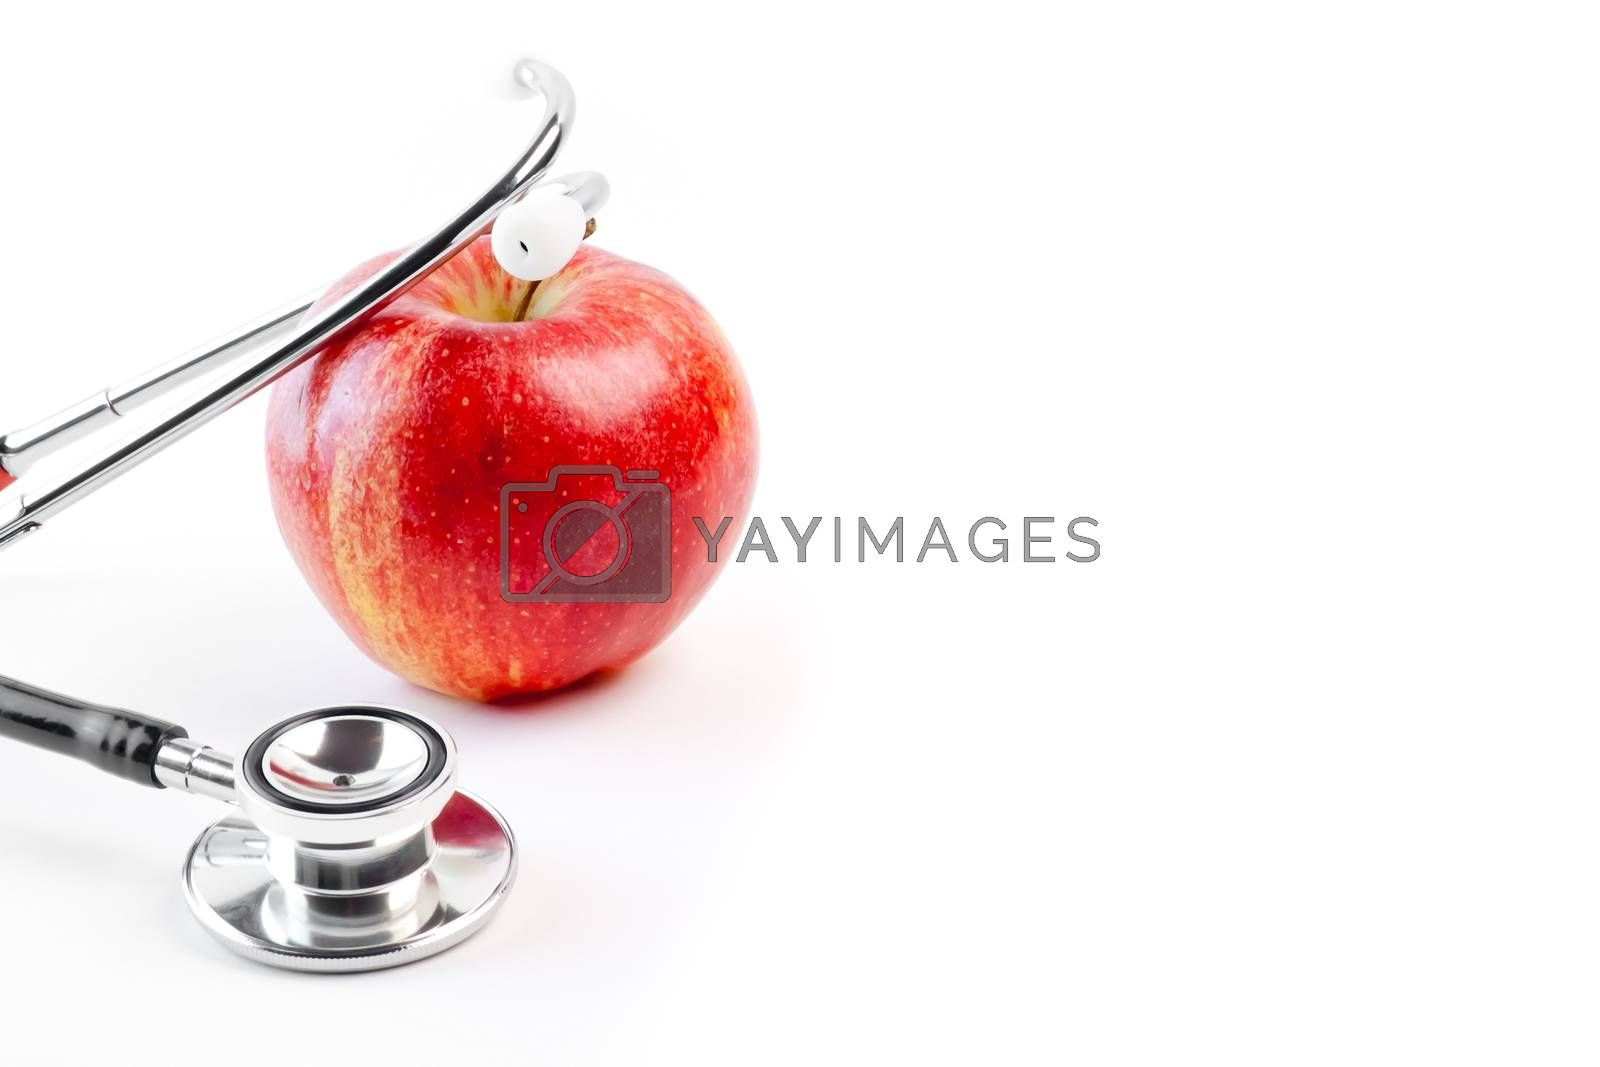 detail of medical stethoscope on red apple on a white background with space for text